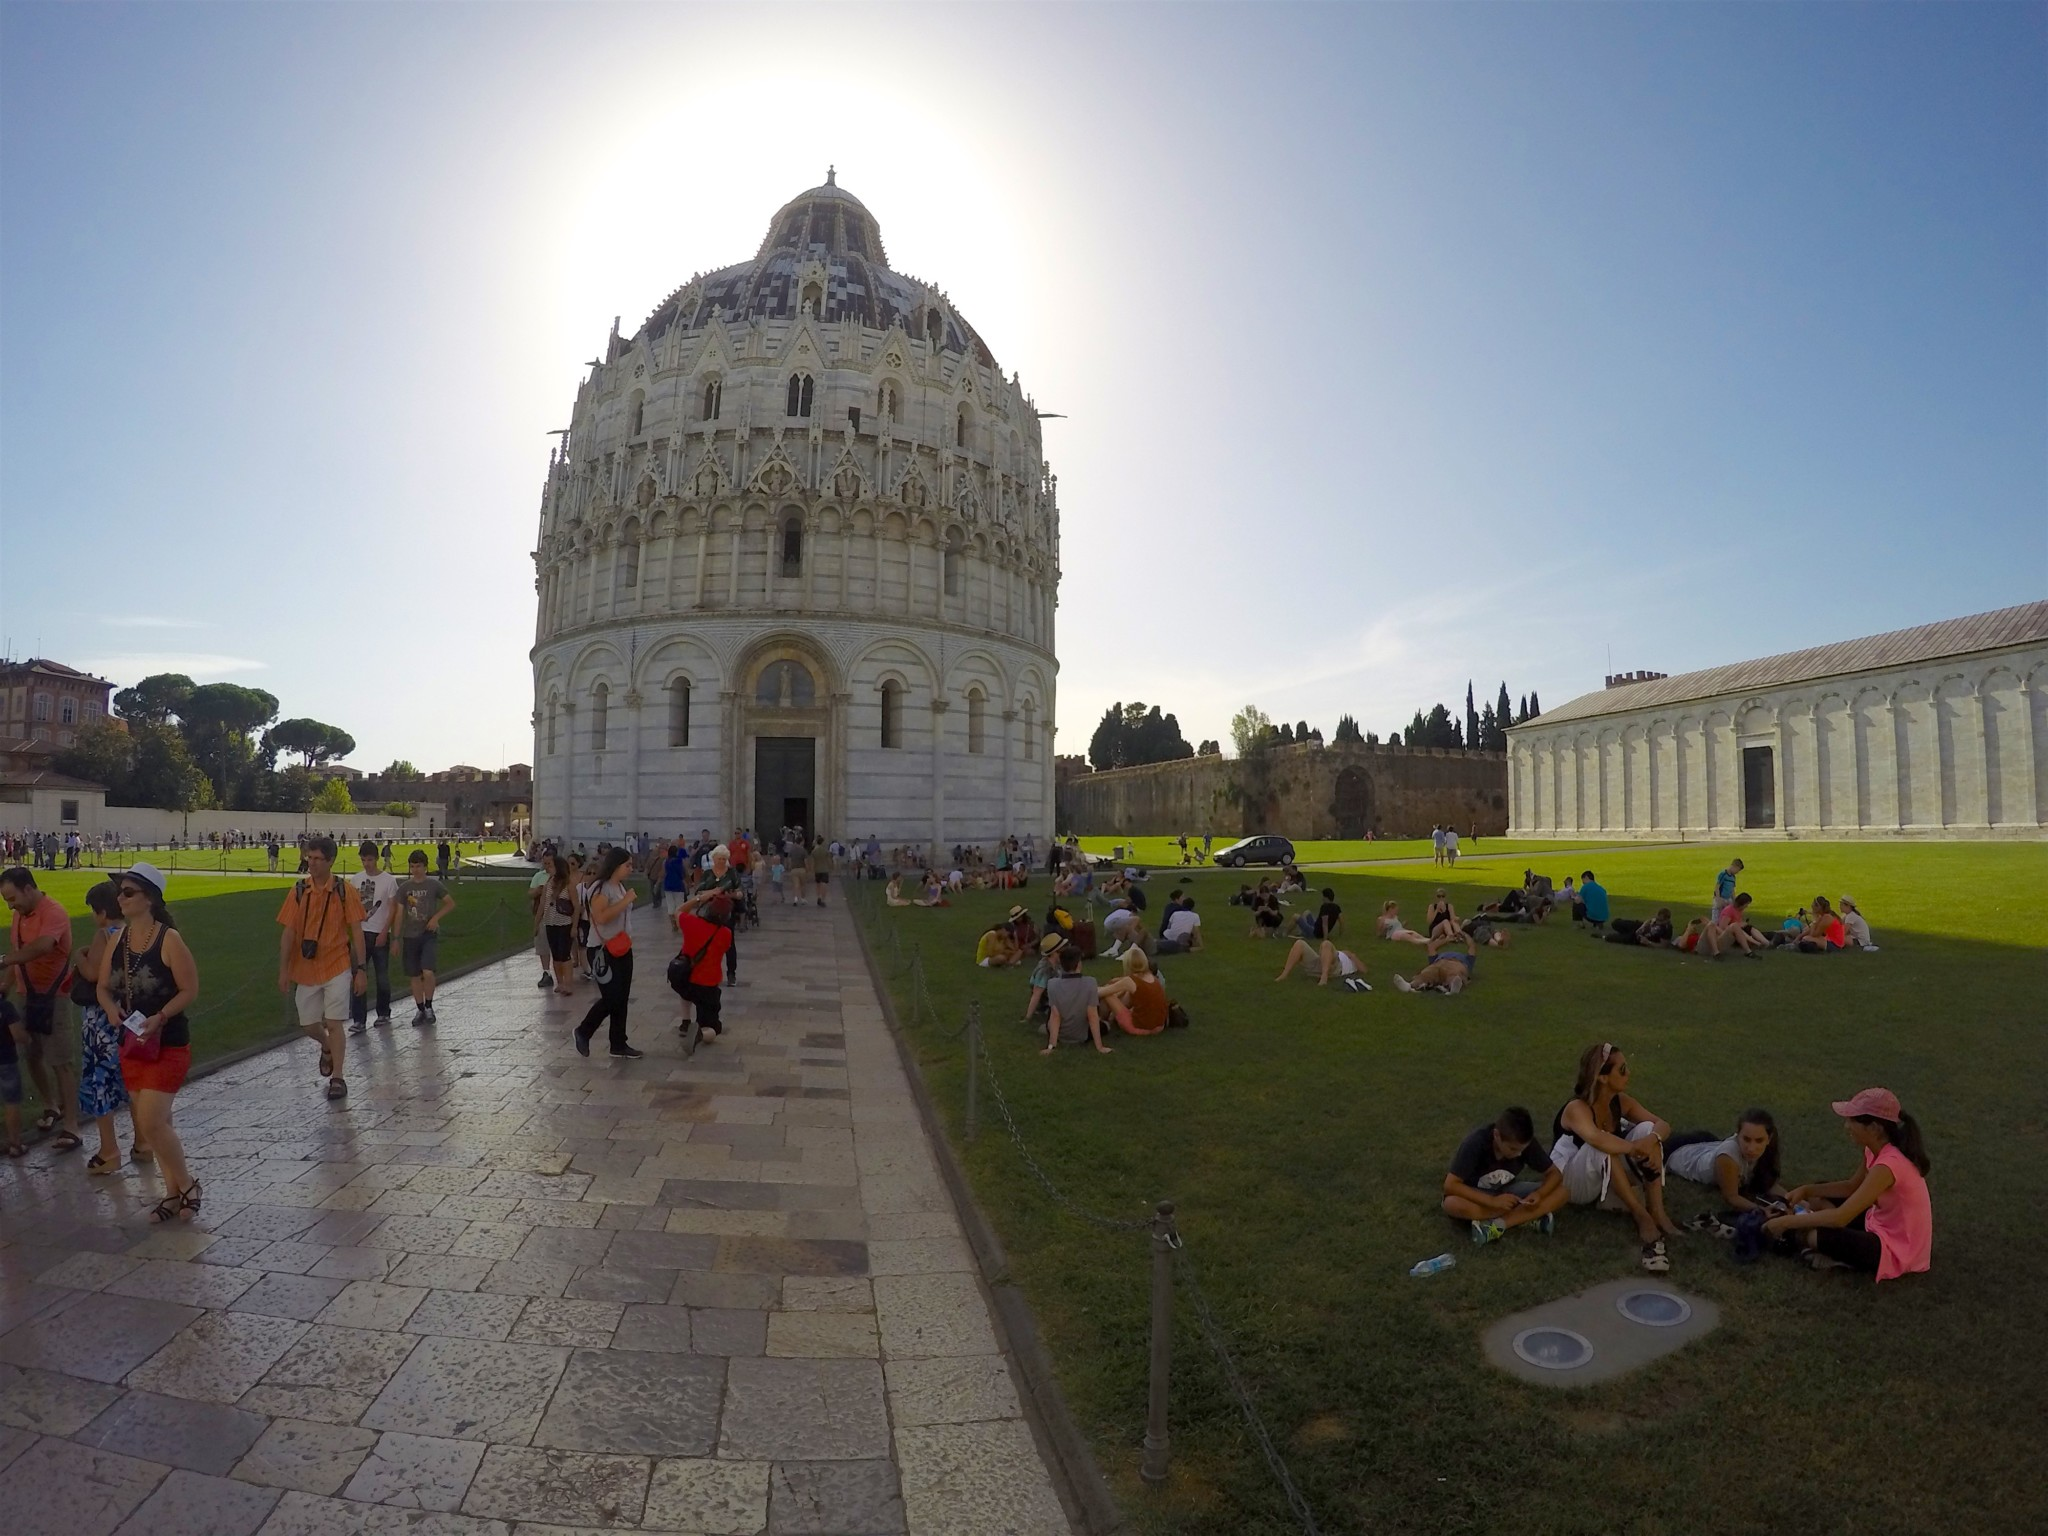 Square of Miracles│Pisa, Italy